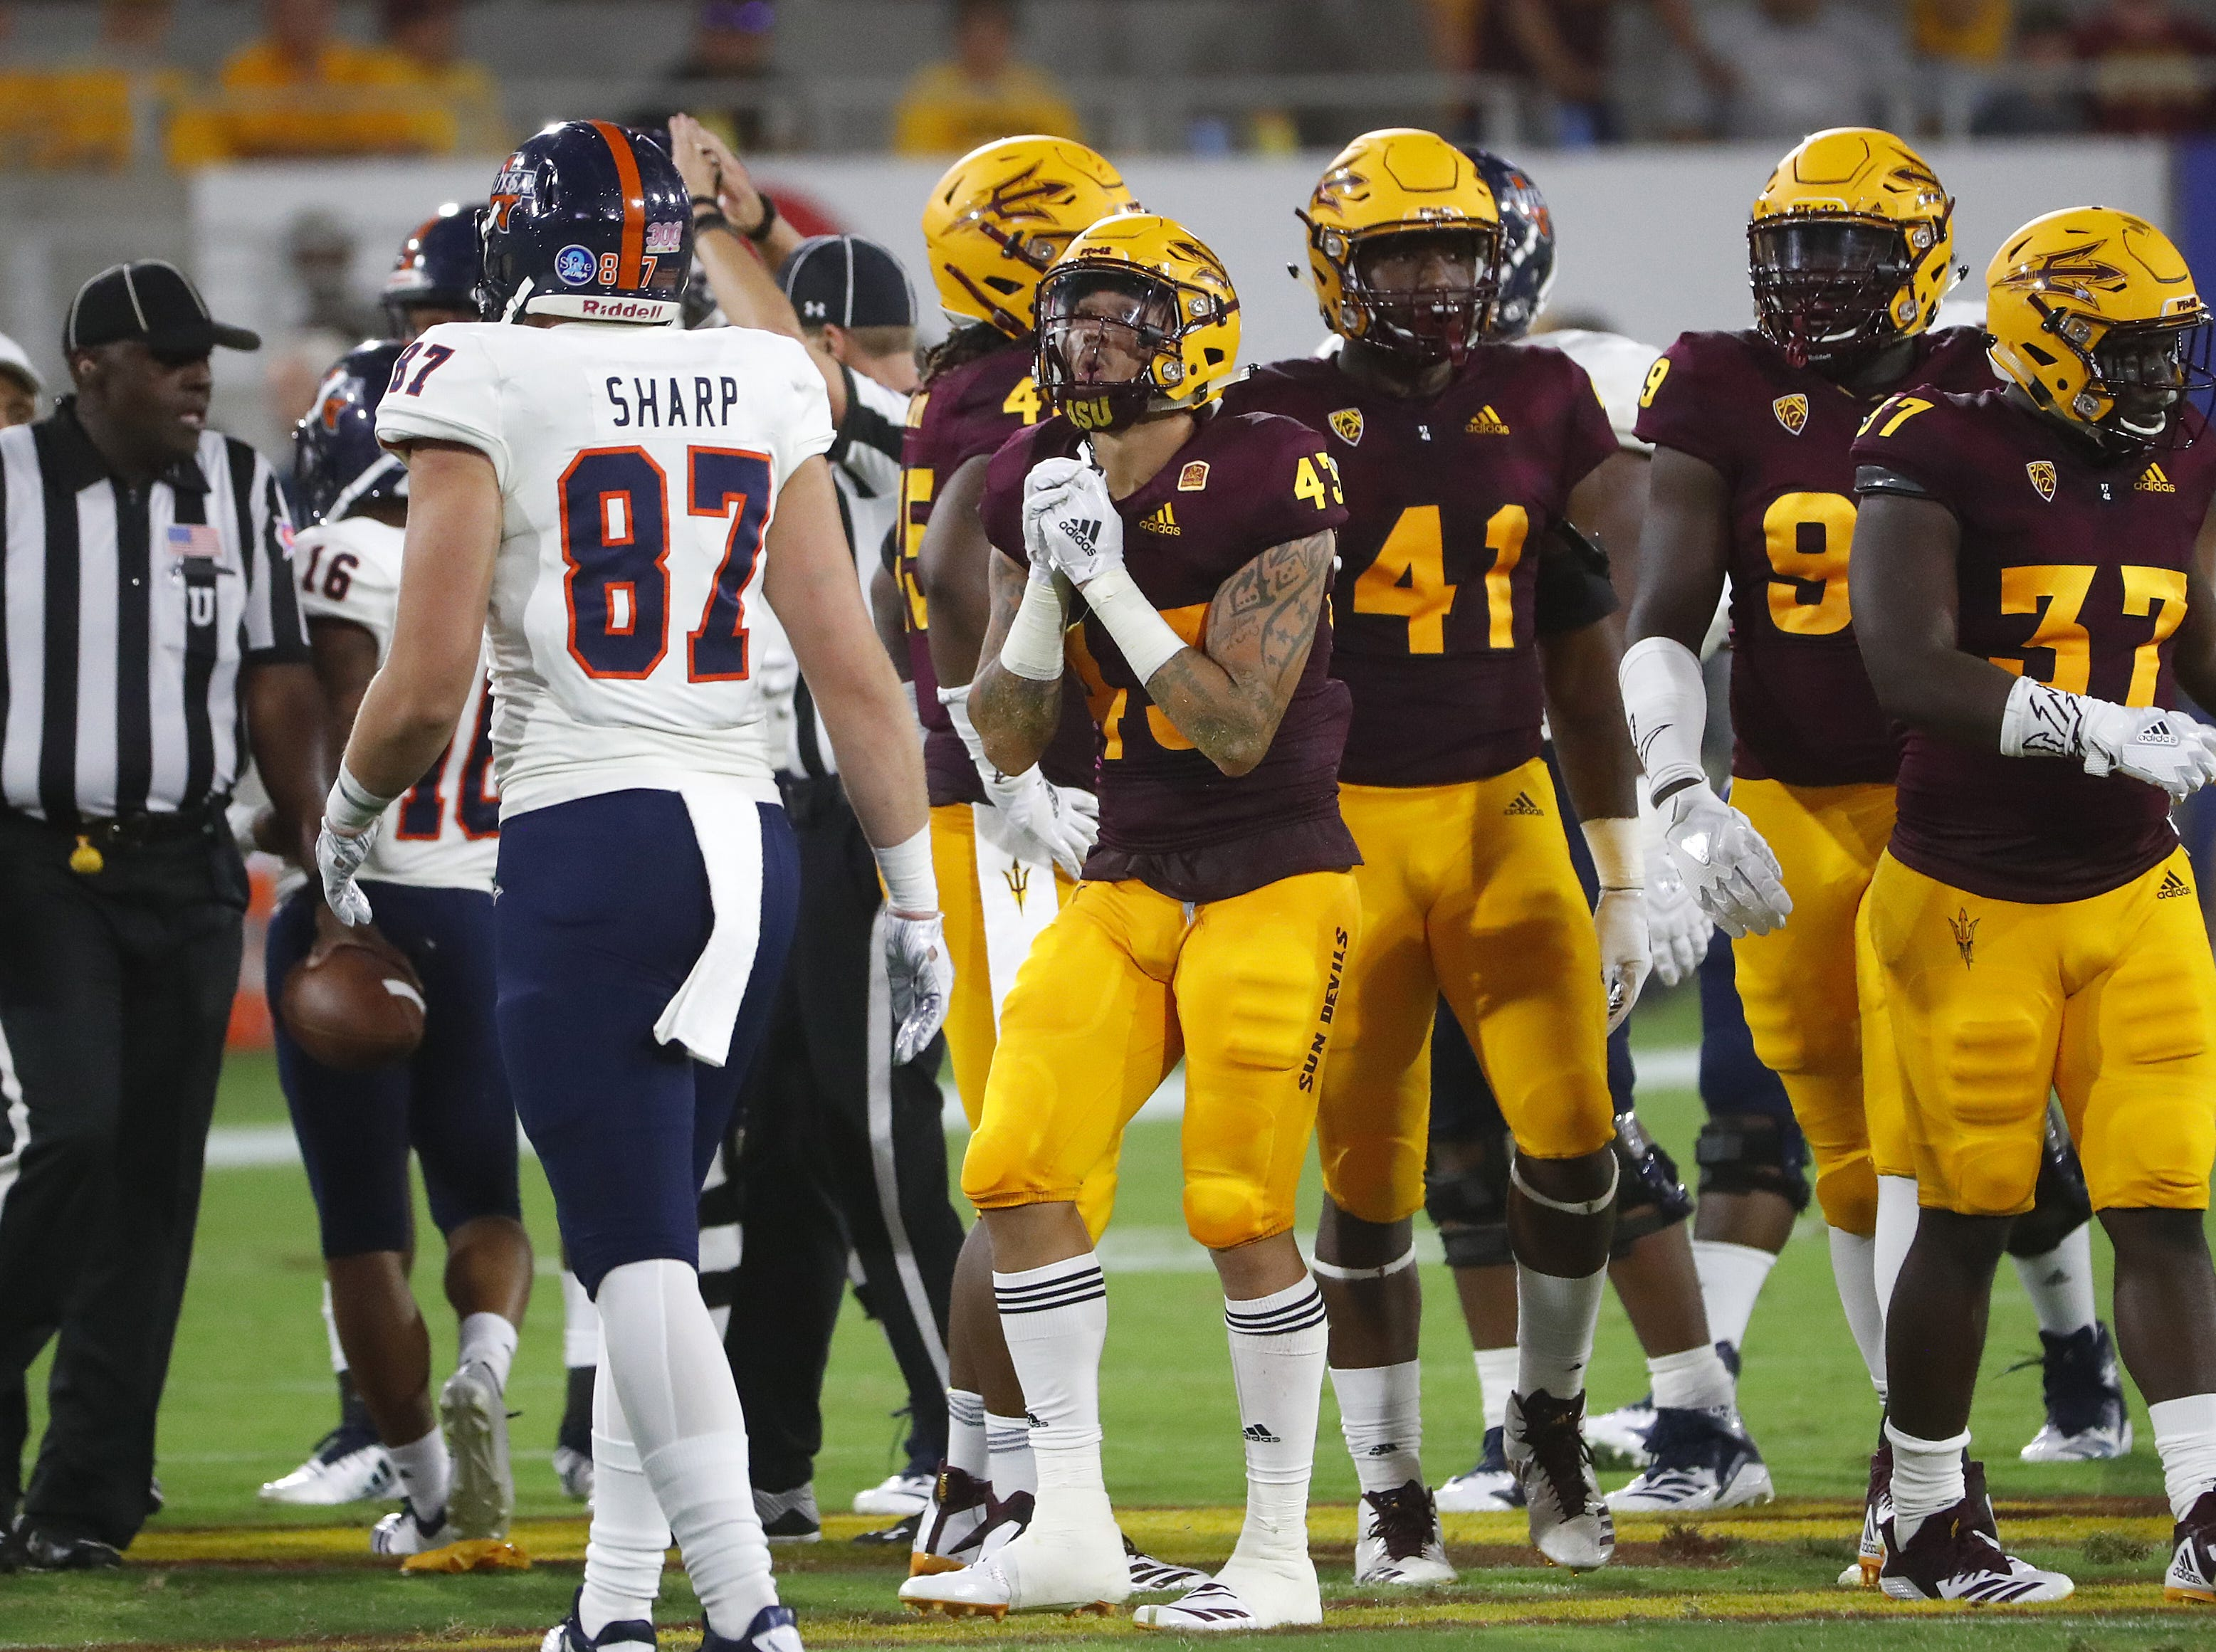 Arizona State Sun Devils safety Jalen Harvey (43) reacts to being flagged for targeting during the first half at Sun Devil Stadium in Tempe, Ariz. on Sept. 1, 2018. Harvey was ejected for the foul.